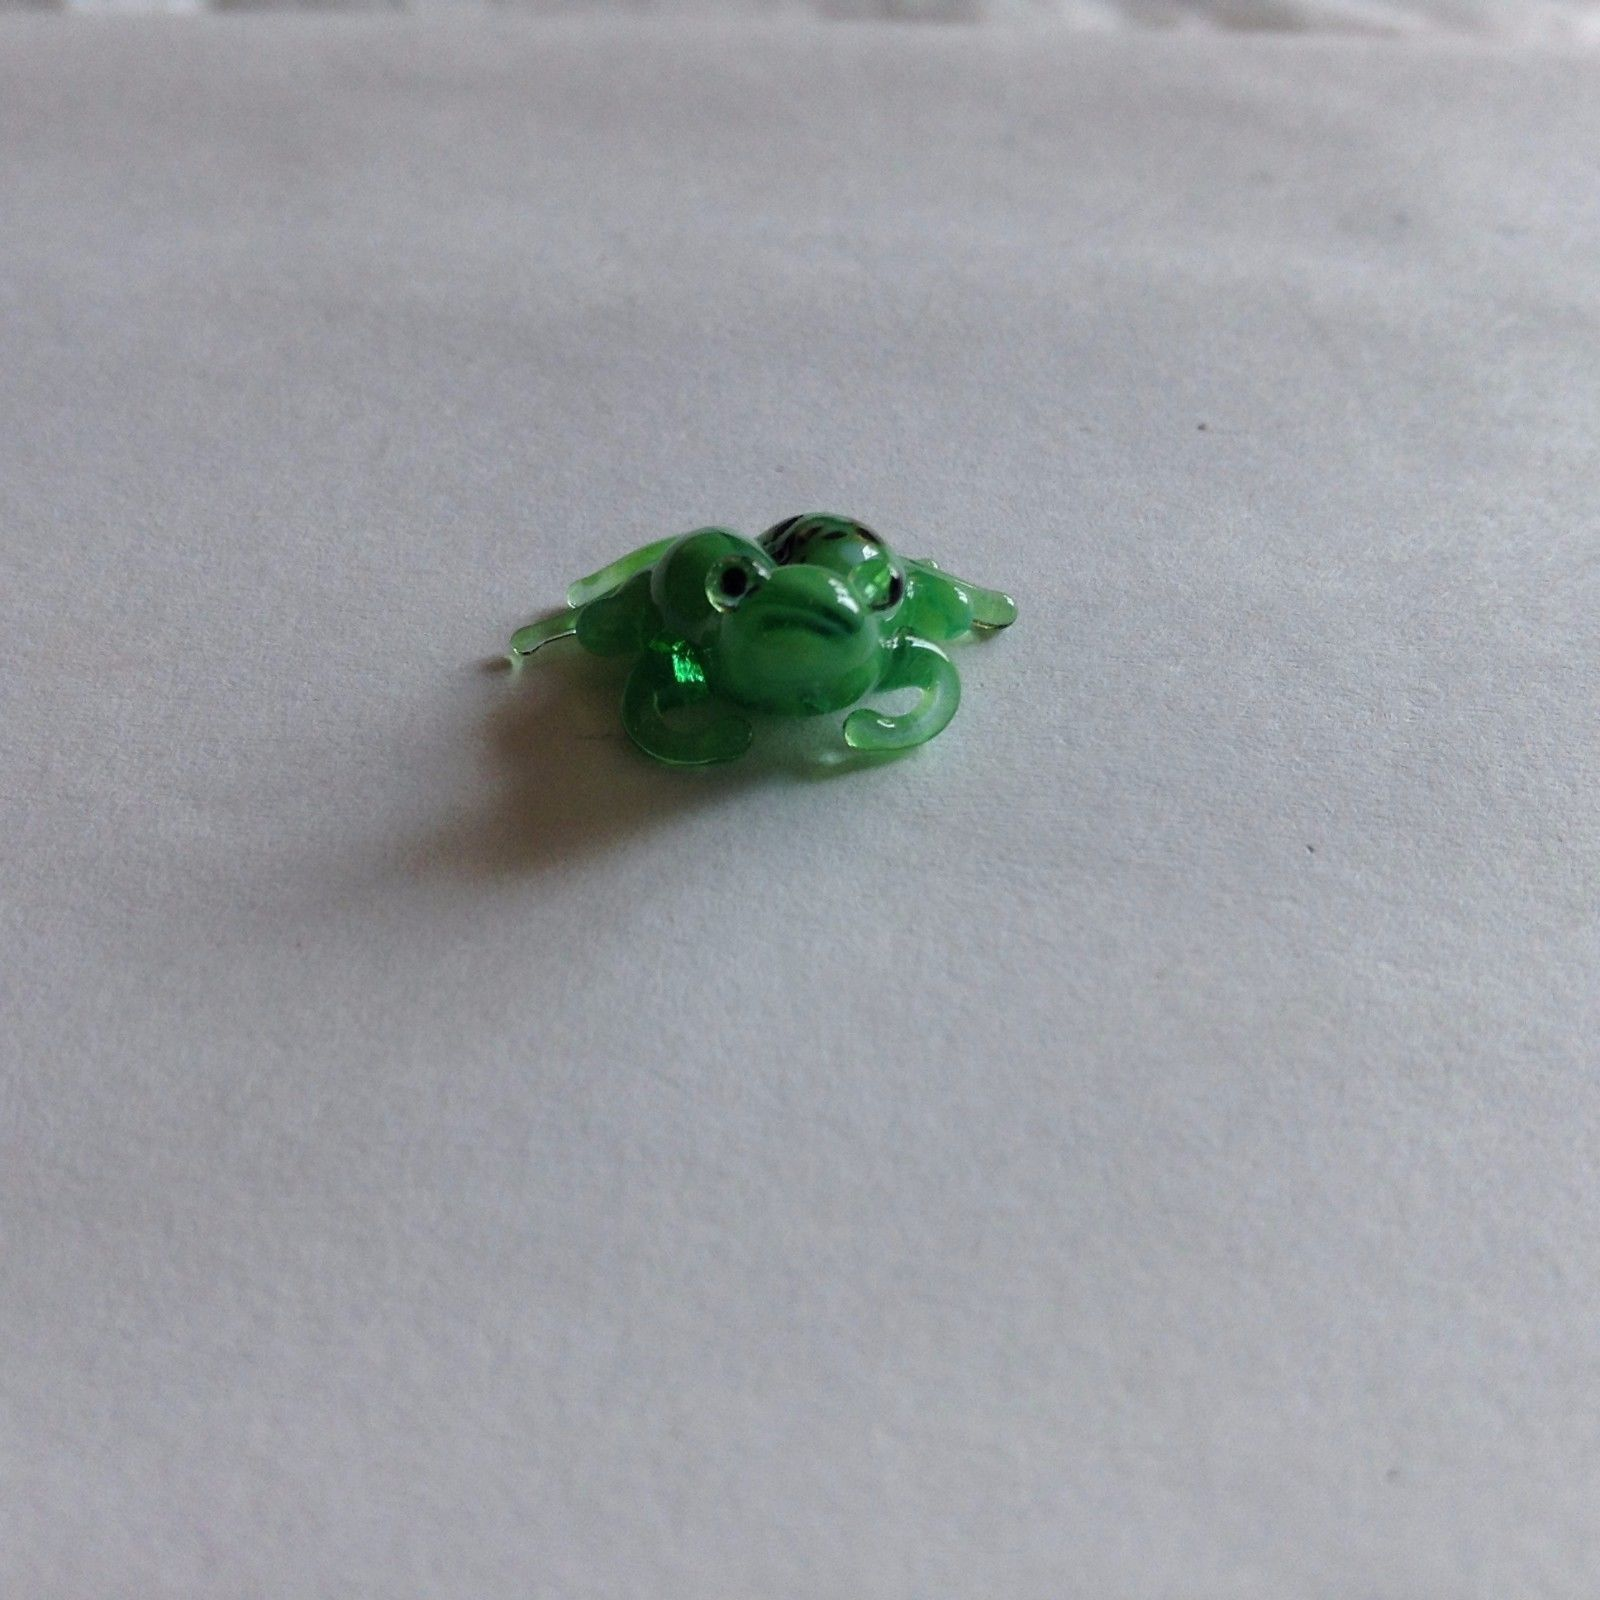 Primary image for Micro miniature small hand blown glass figurine sad green frog USA  NIB